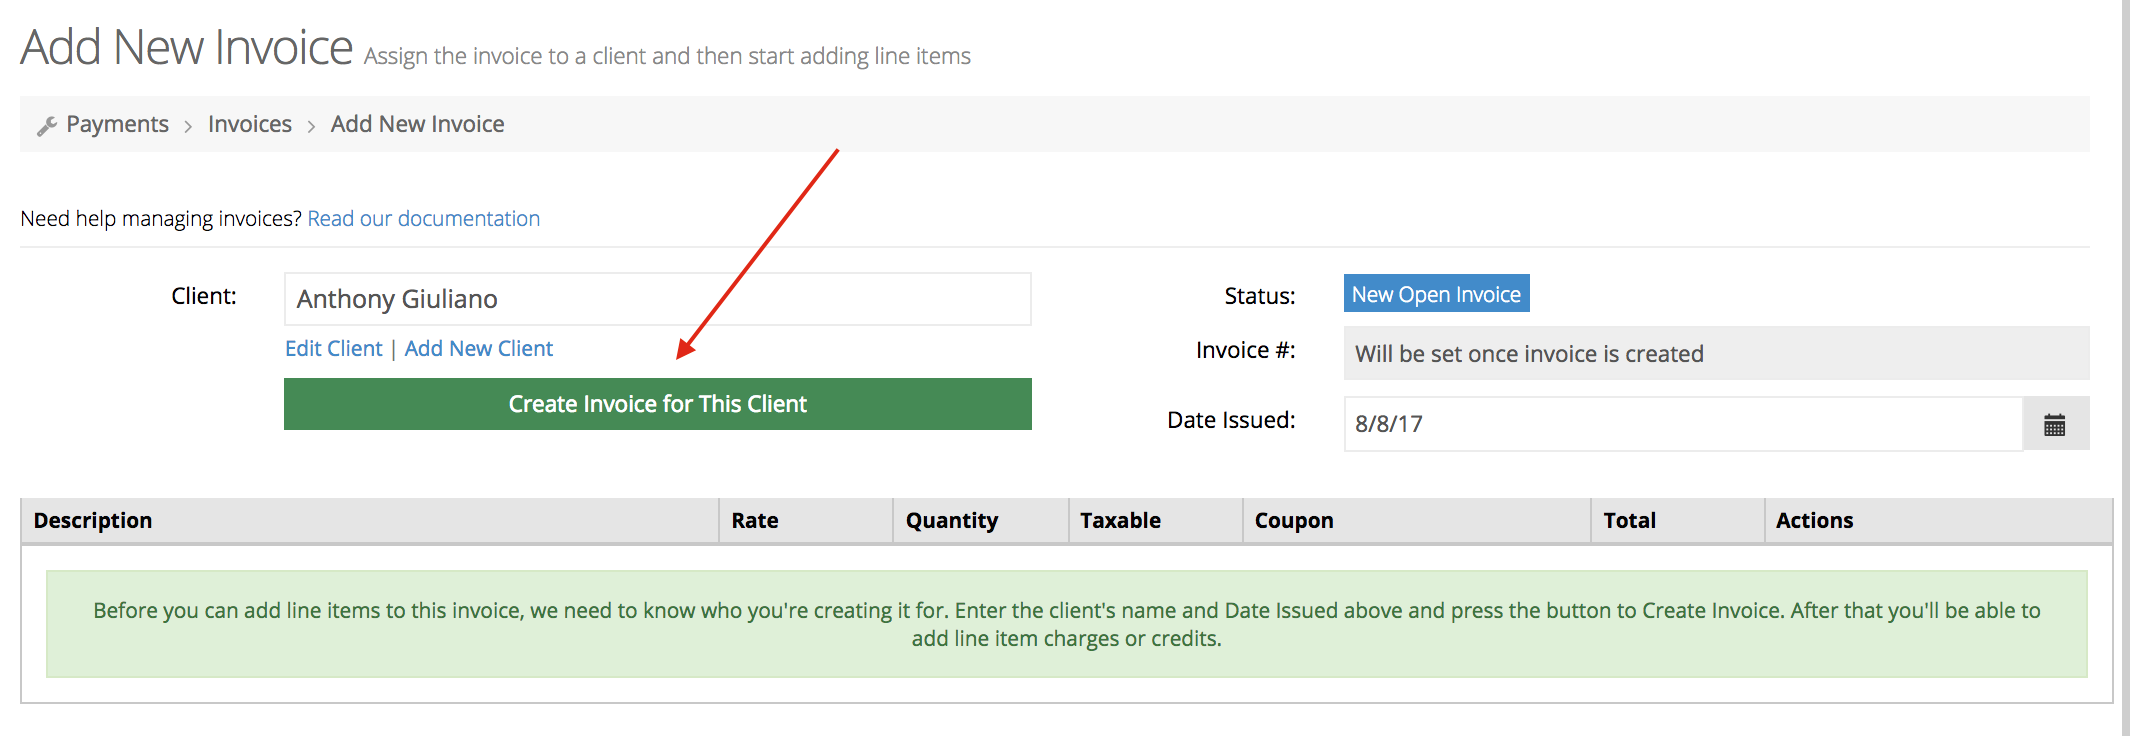 Create invoice for client